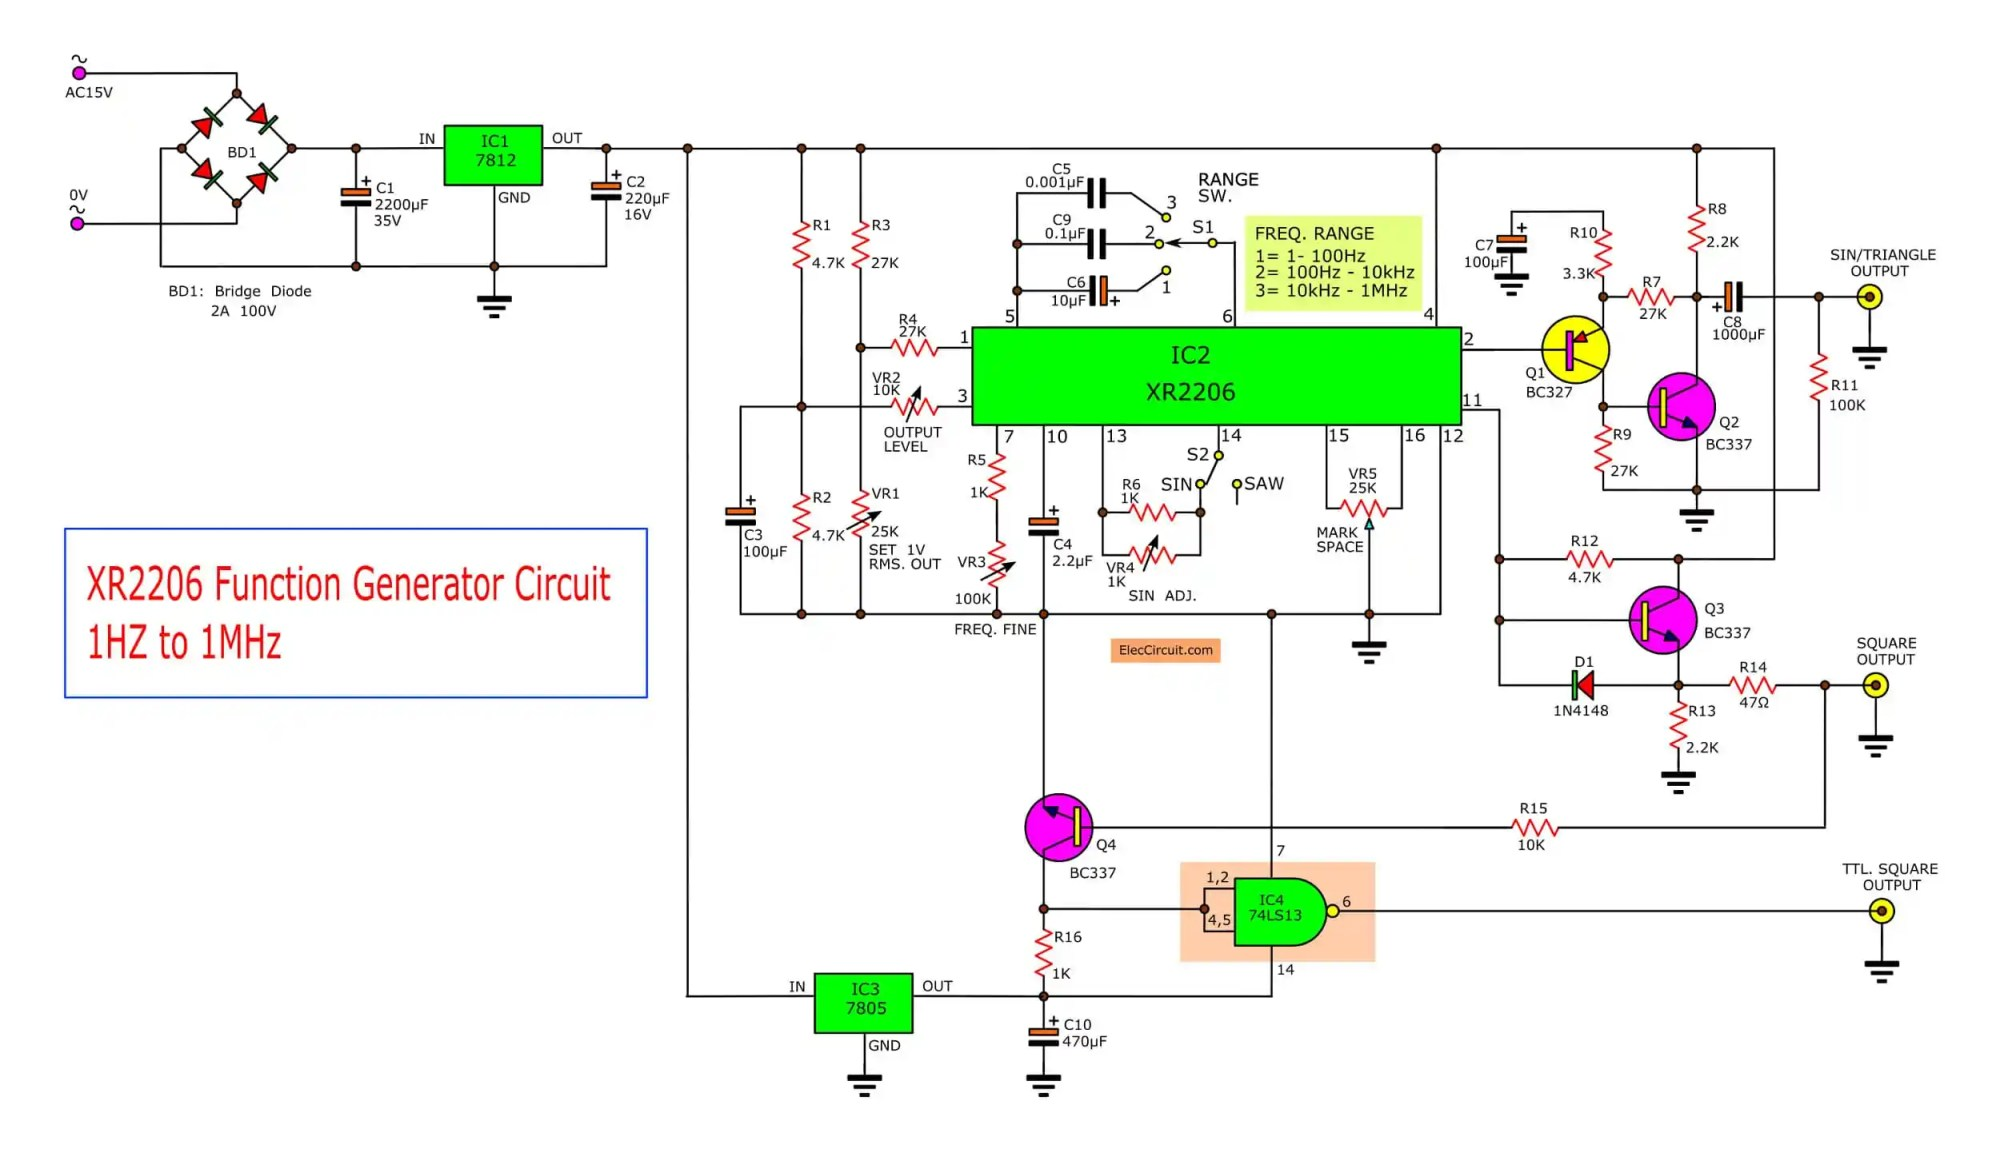 hight resolution of 1 voltage control oscillator vco that has the frequency out to depending on the value of the capacitor between pin 5 6 and the resistor between the pin